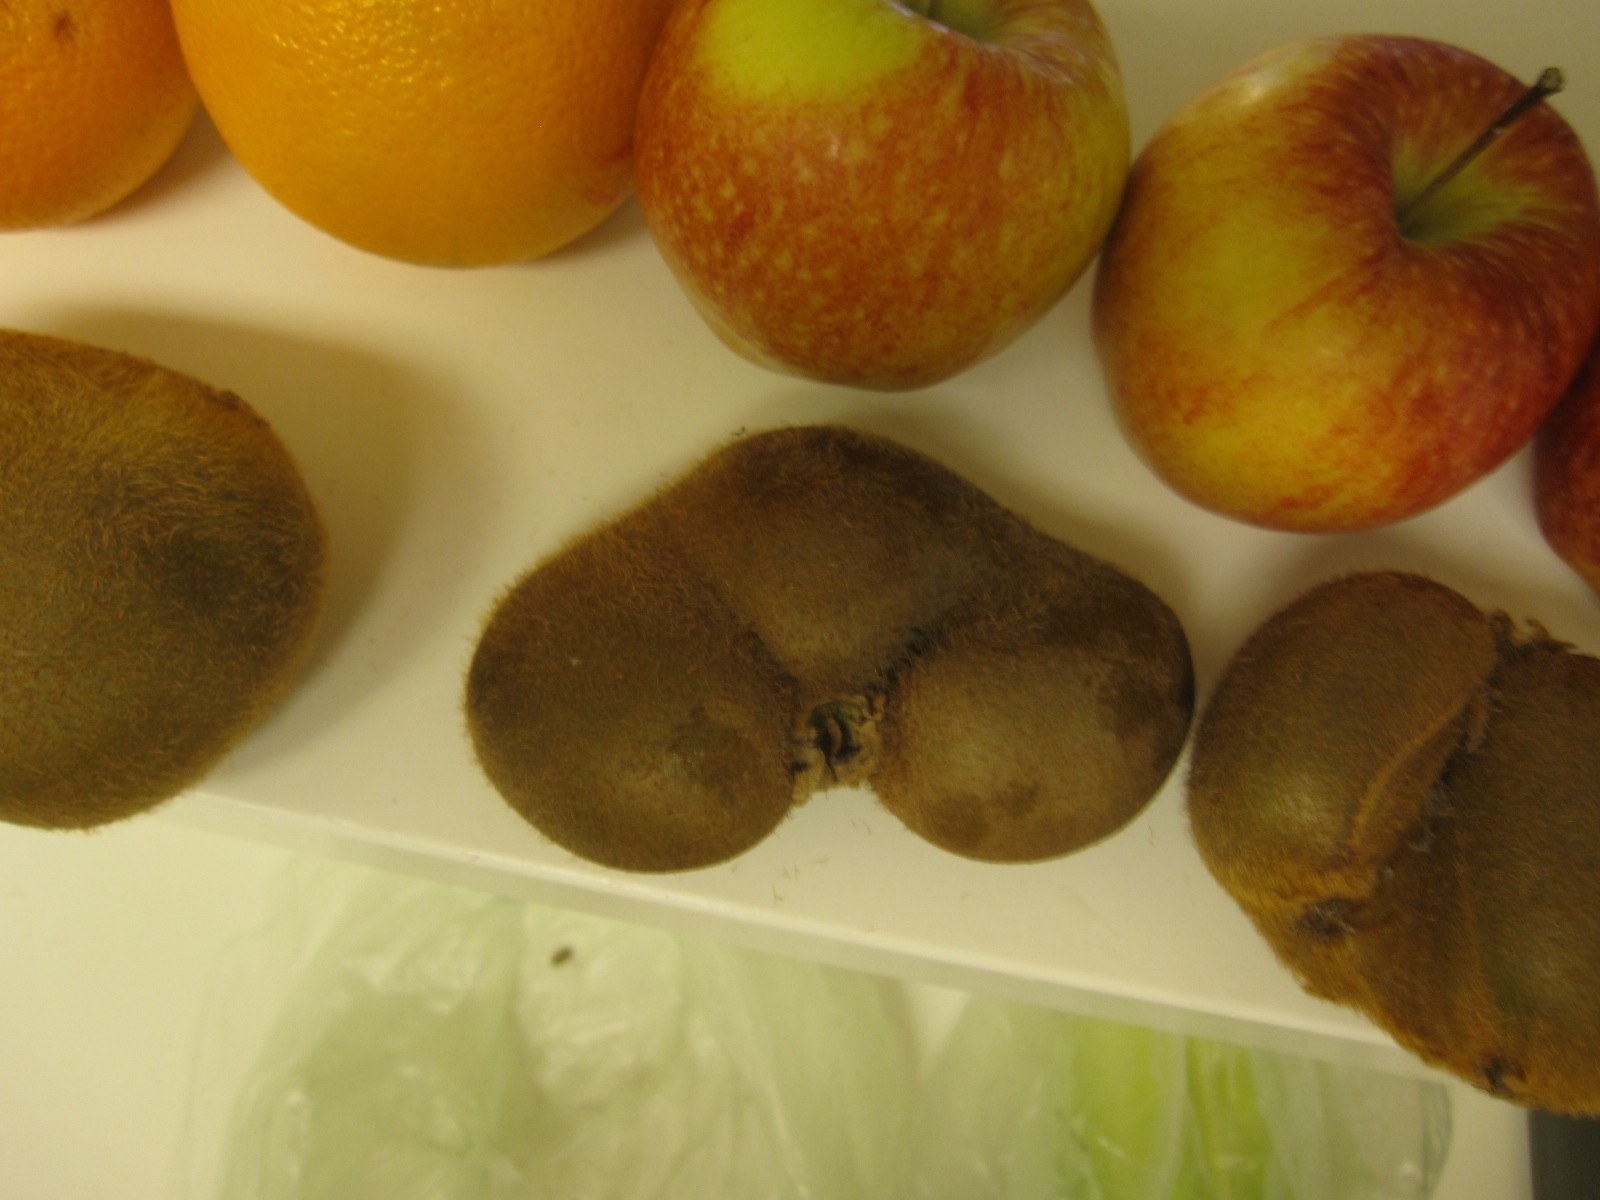 Funny fruits - Kiwi triplets